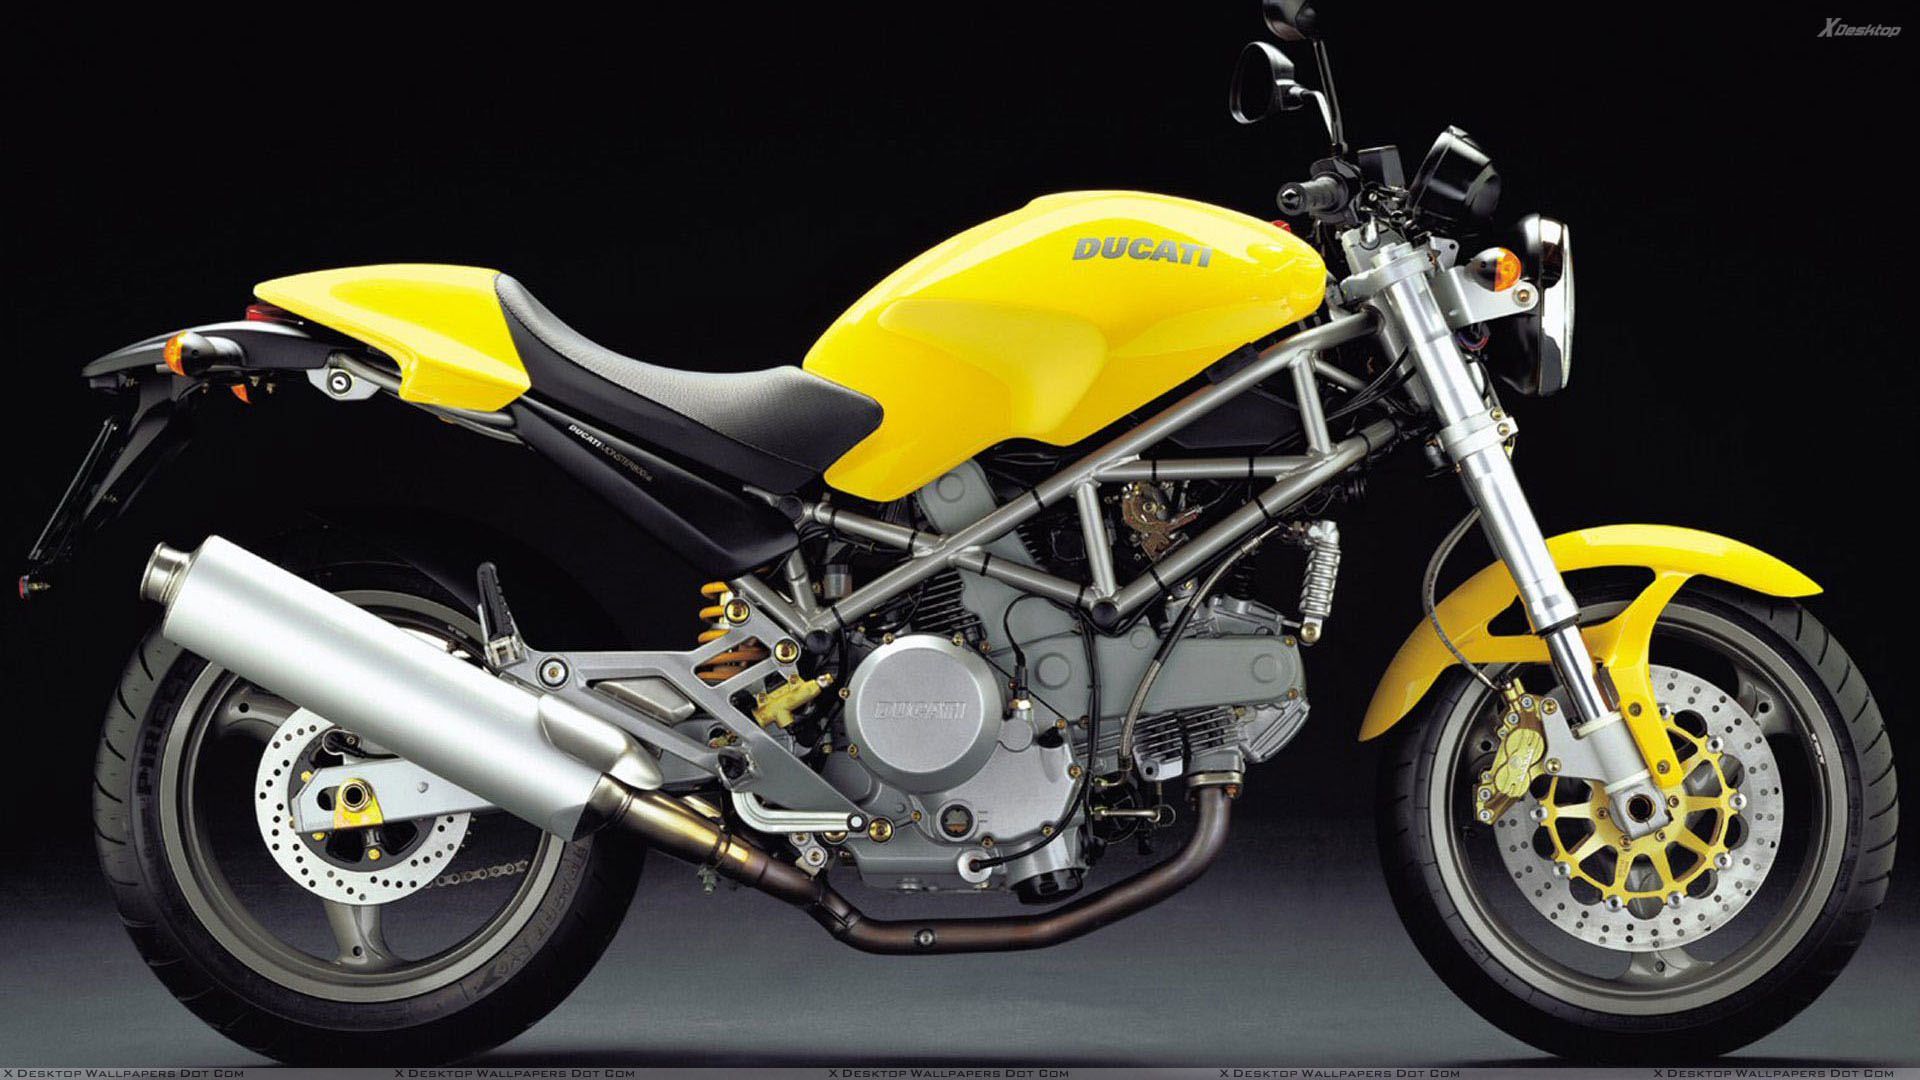 Ducati Monster 800 2004 in Yellow Side Pose Wallpaper